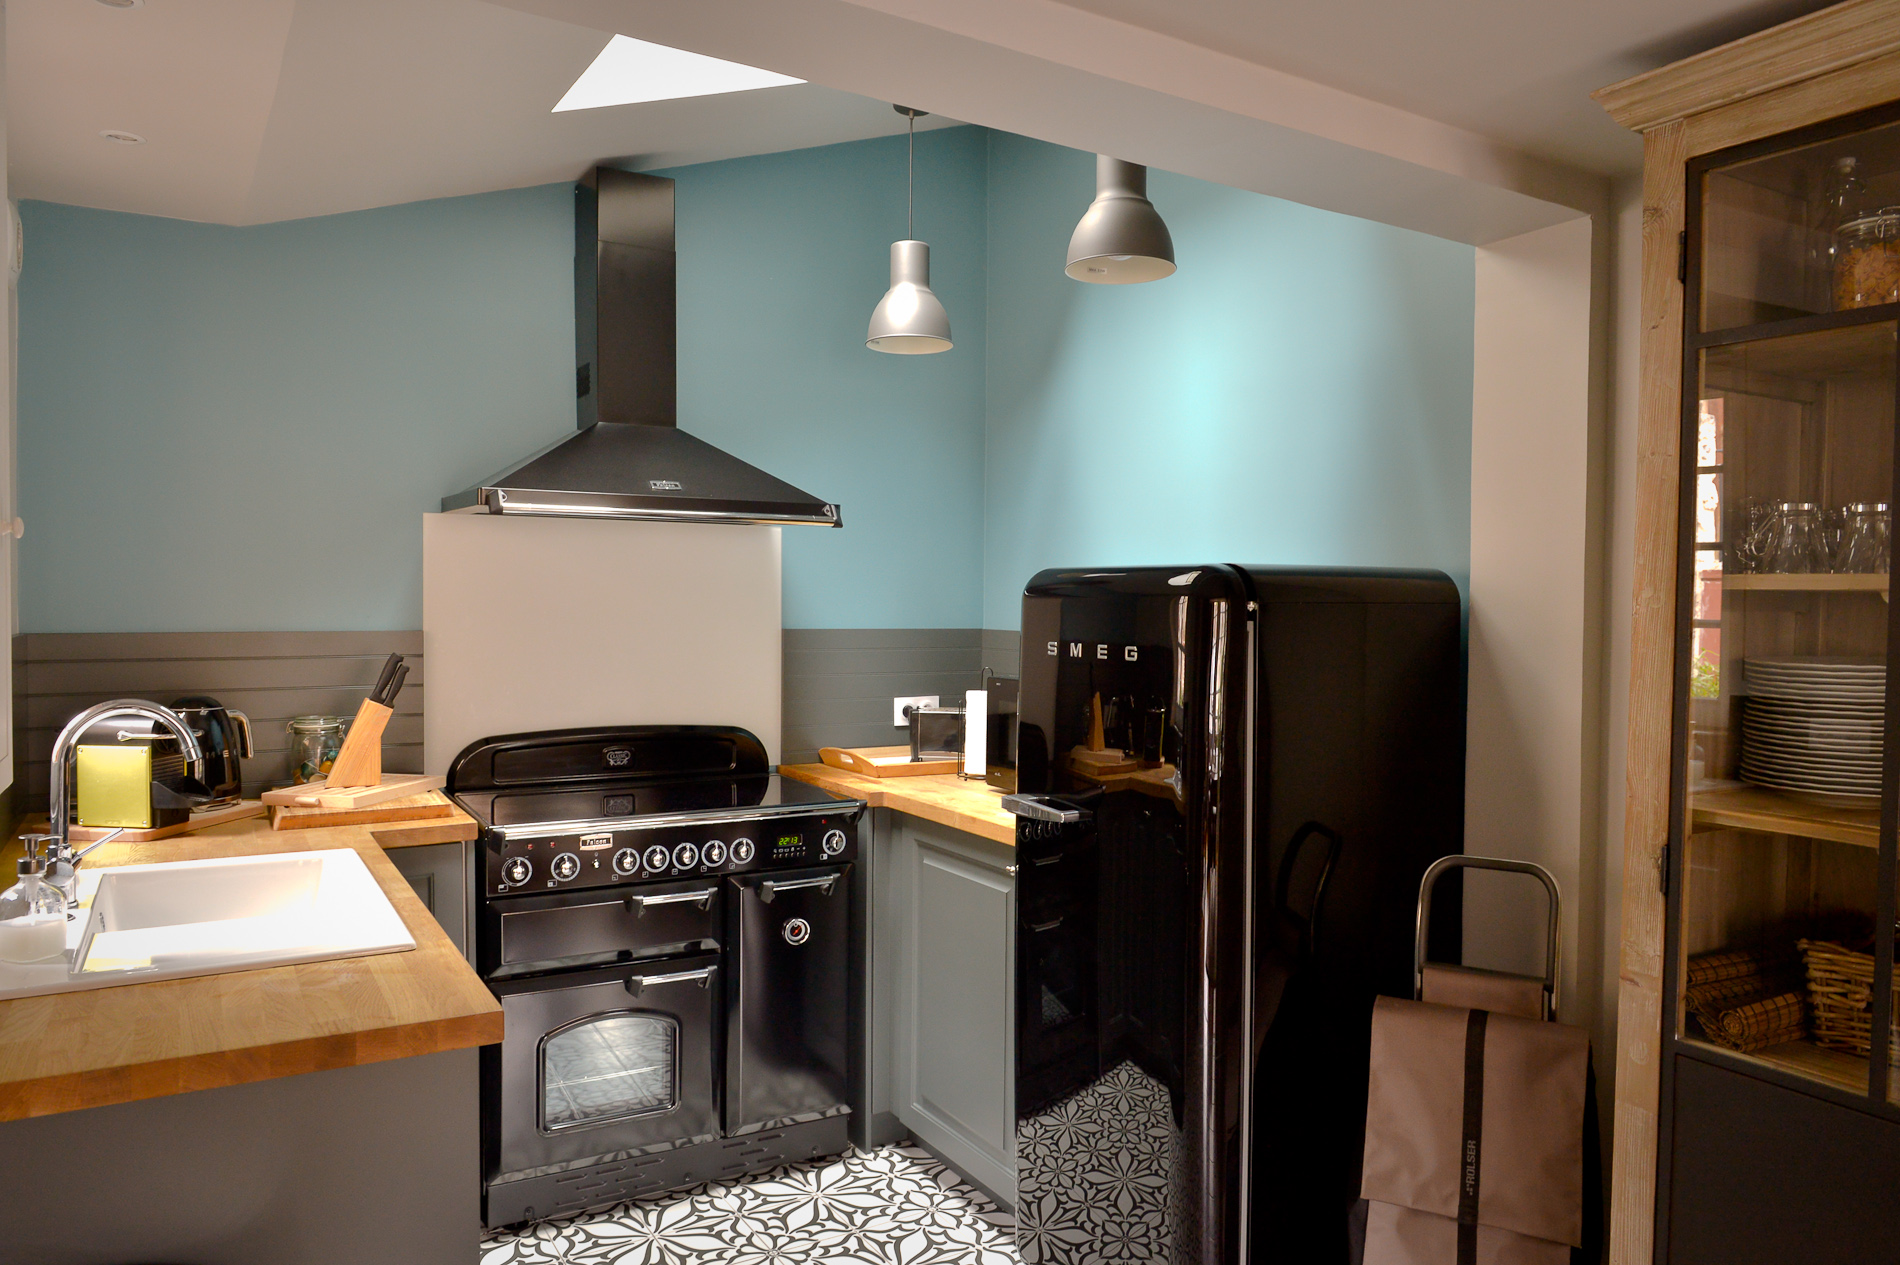 The kitchen is fully equipped, modern, roomy and well decorated.